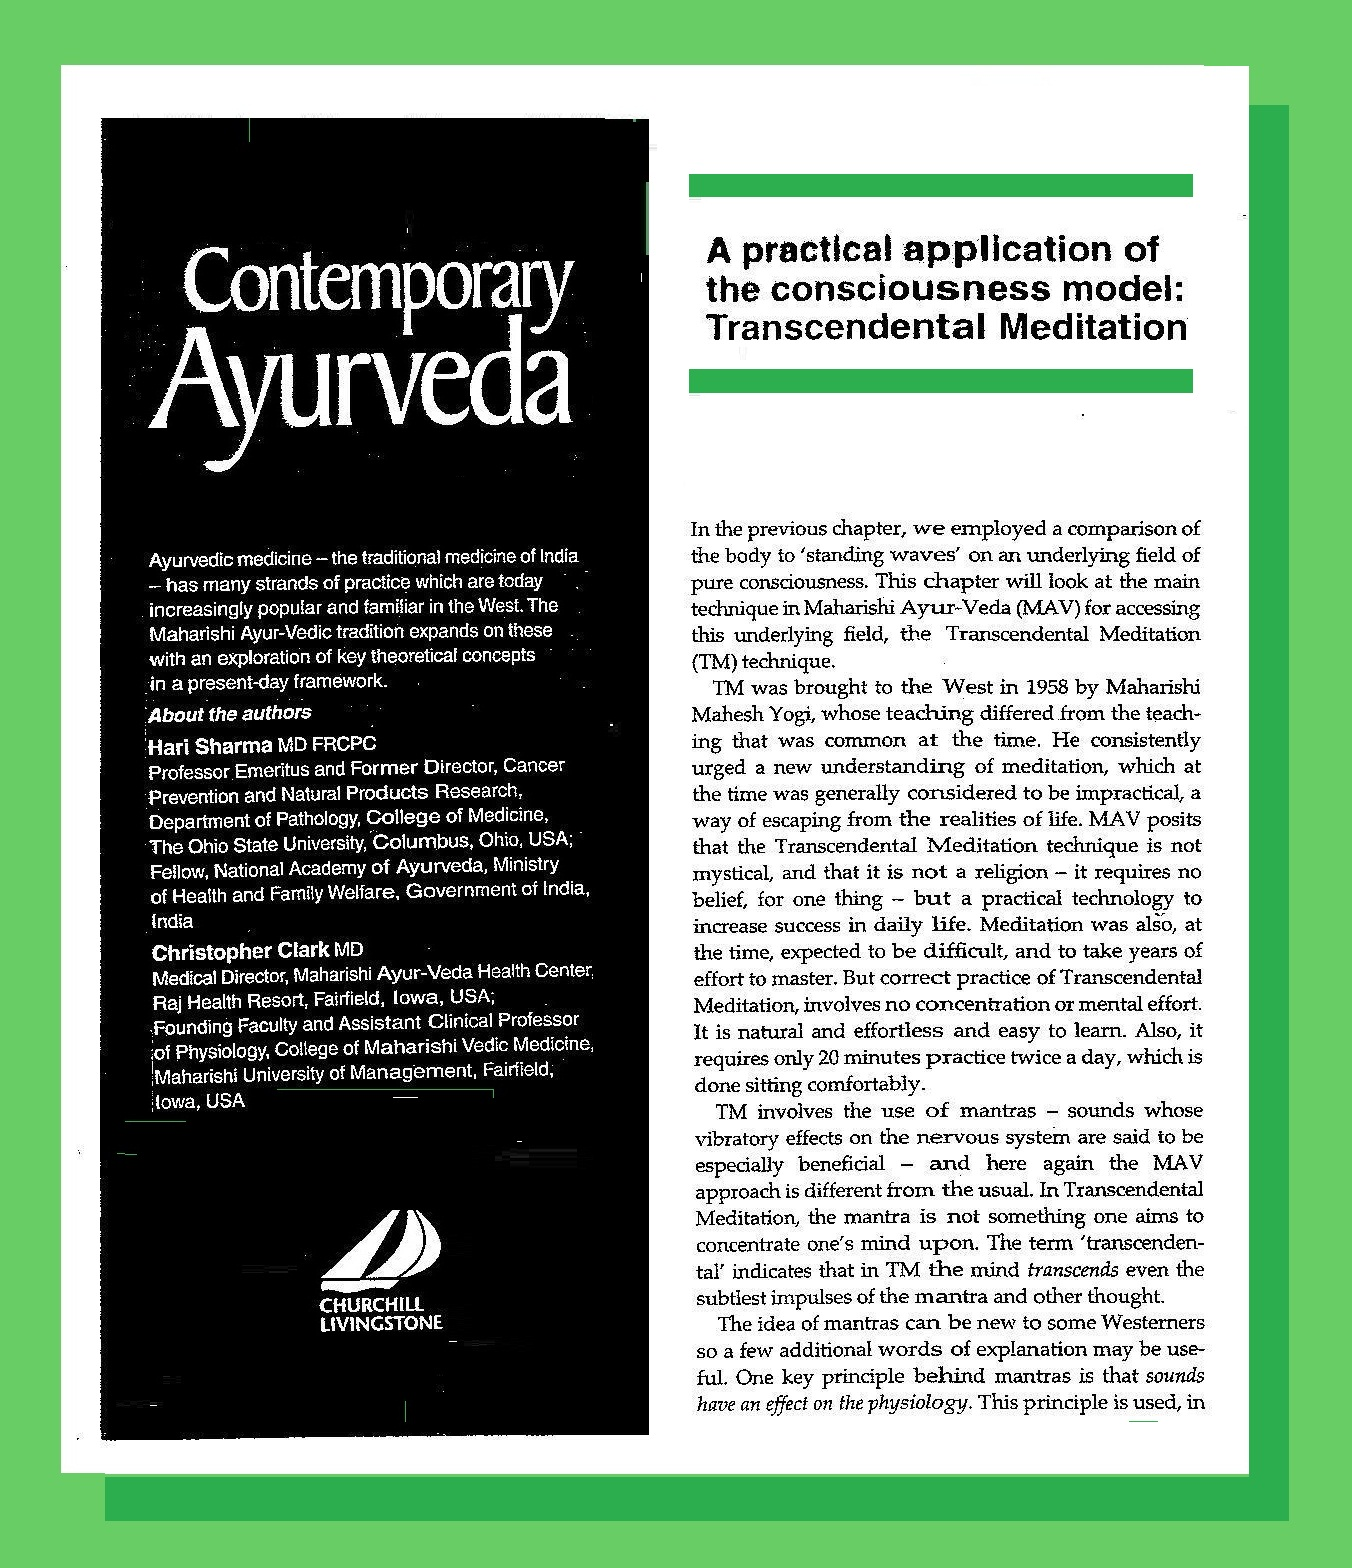 Contemporary_Ayurveda_cover_image.jpg